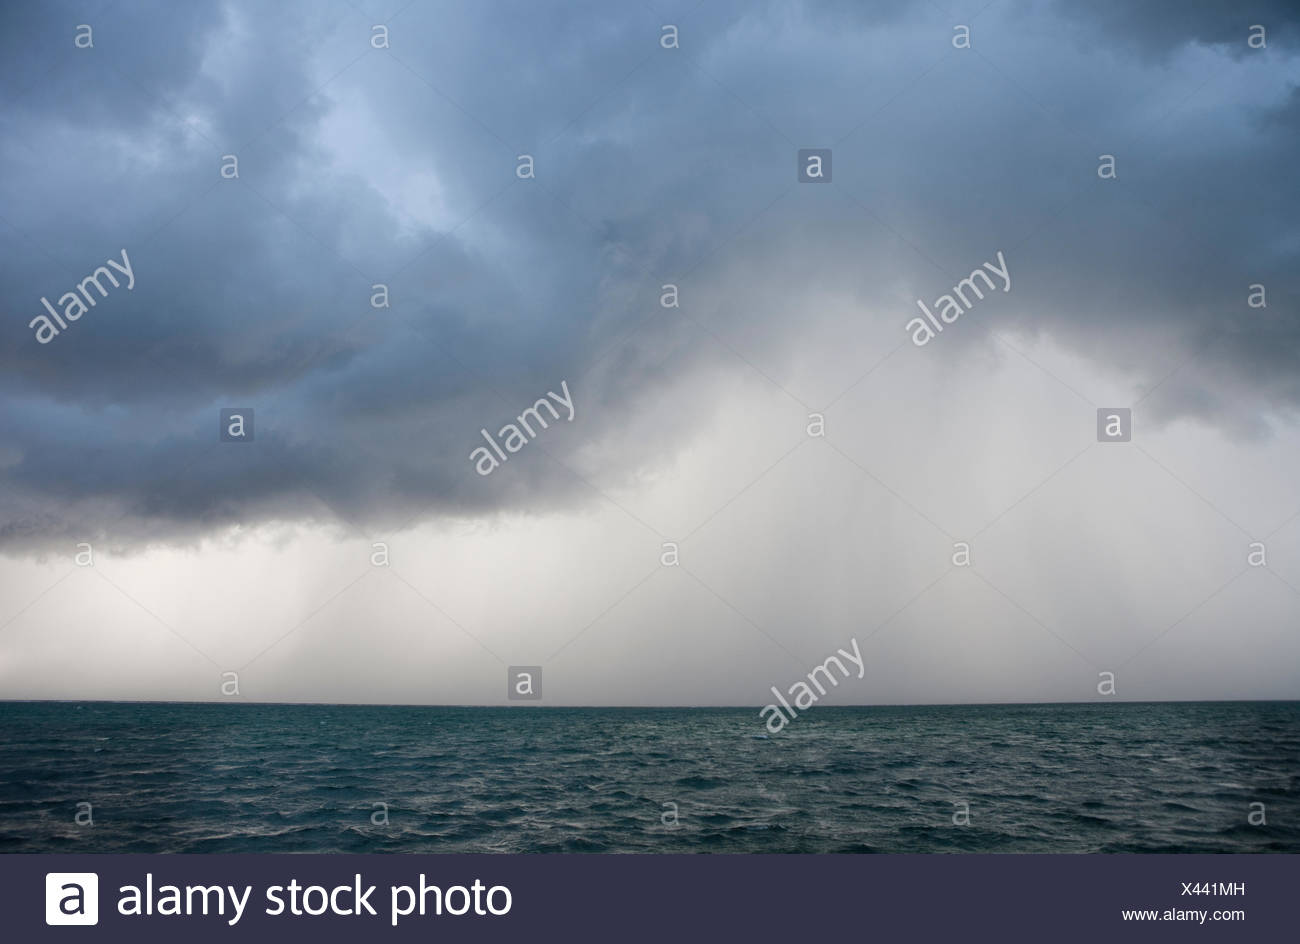 a view of an ocean storm with menacing clouds and rain showering below - Stock Image